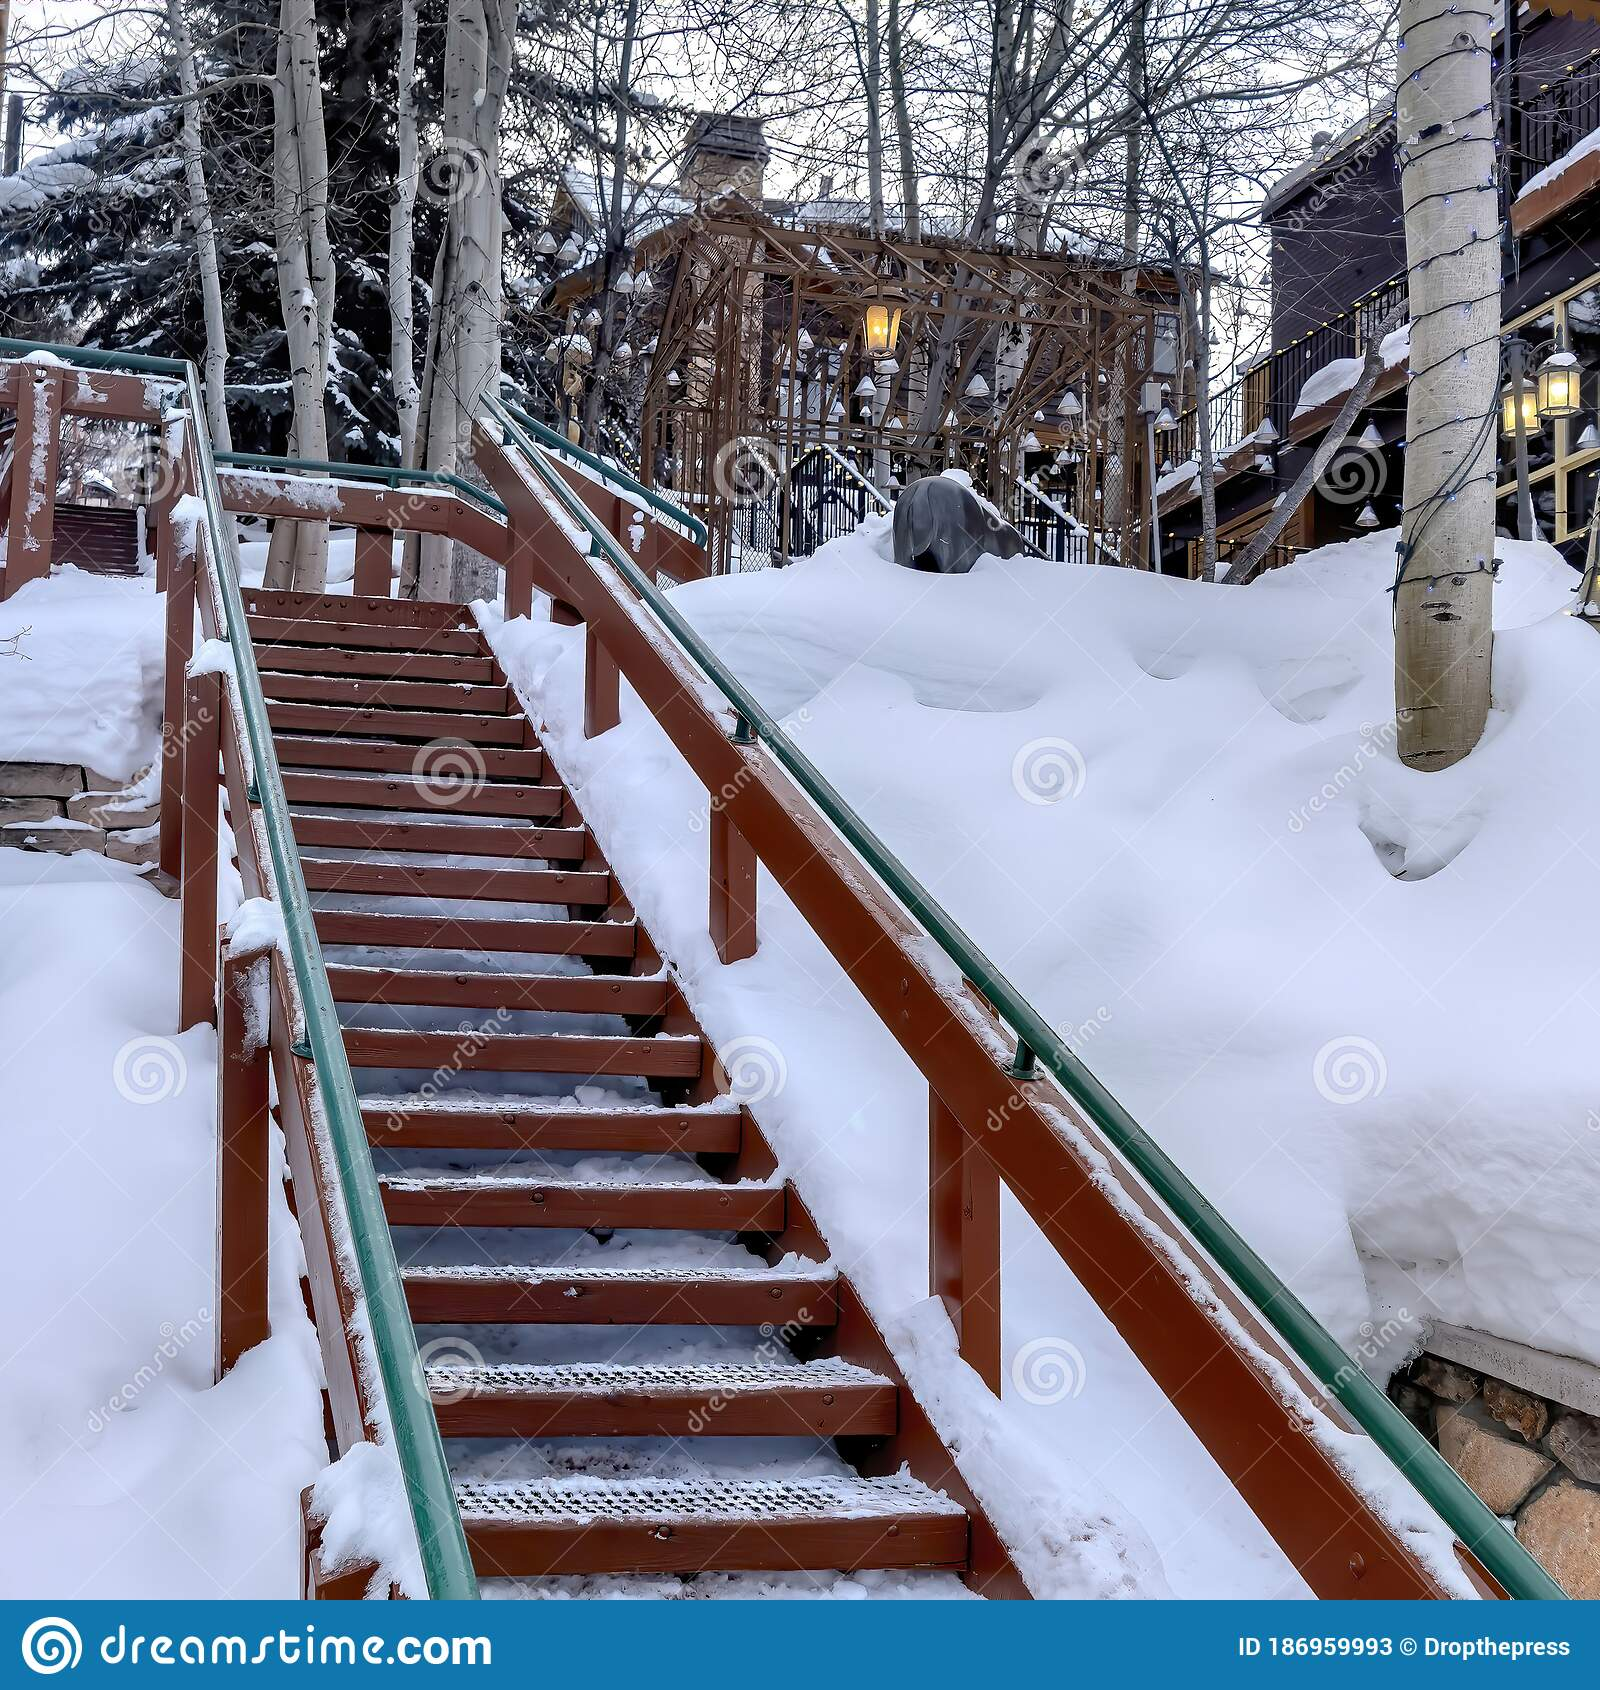 Image of: Square Frame Outdoor Stairs On Snowy Slope Against Buildings And Trees On Cloudy Winter Day Stock Image Image Of Cloudy Building 186959993